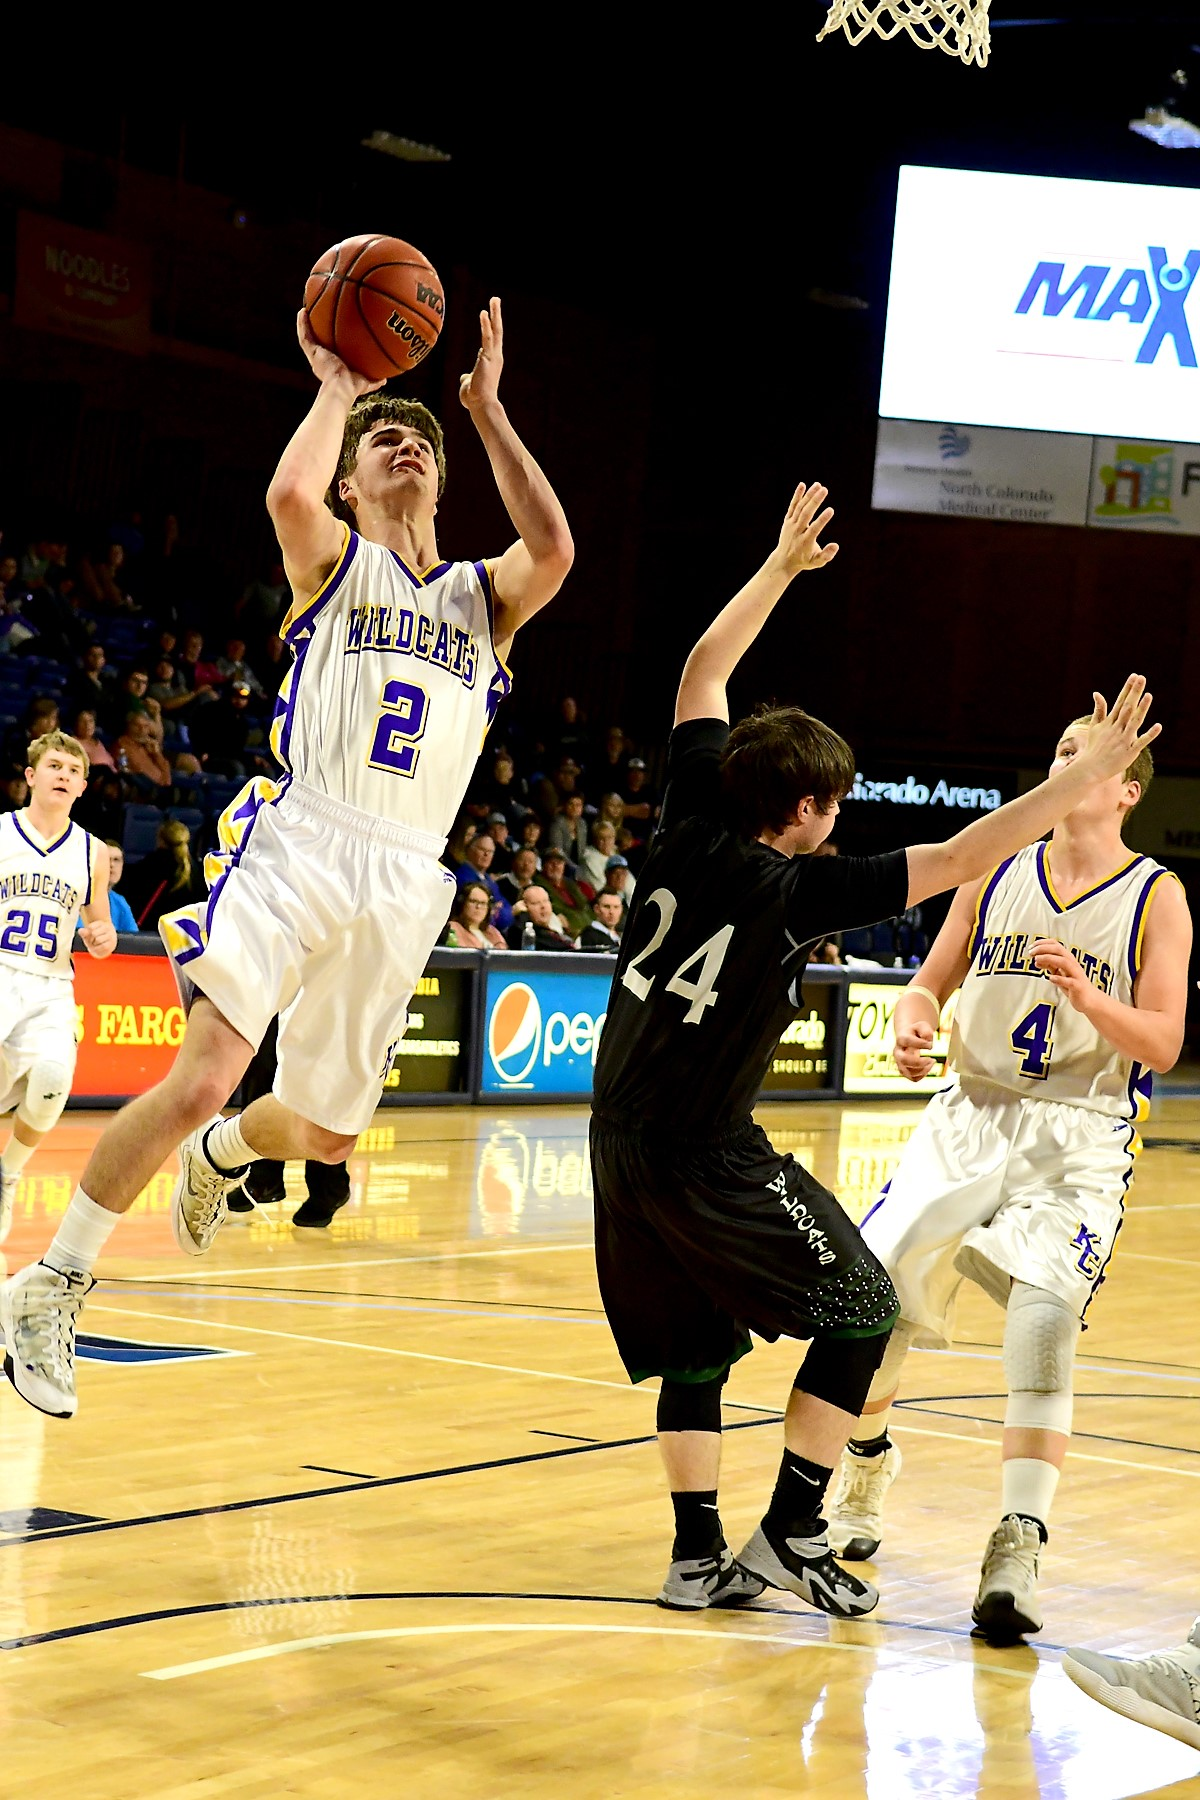 Kit Carson - Brad Johnson going up for a layup during the 3rd Place State Tournament - Photo credit Bob Schecter